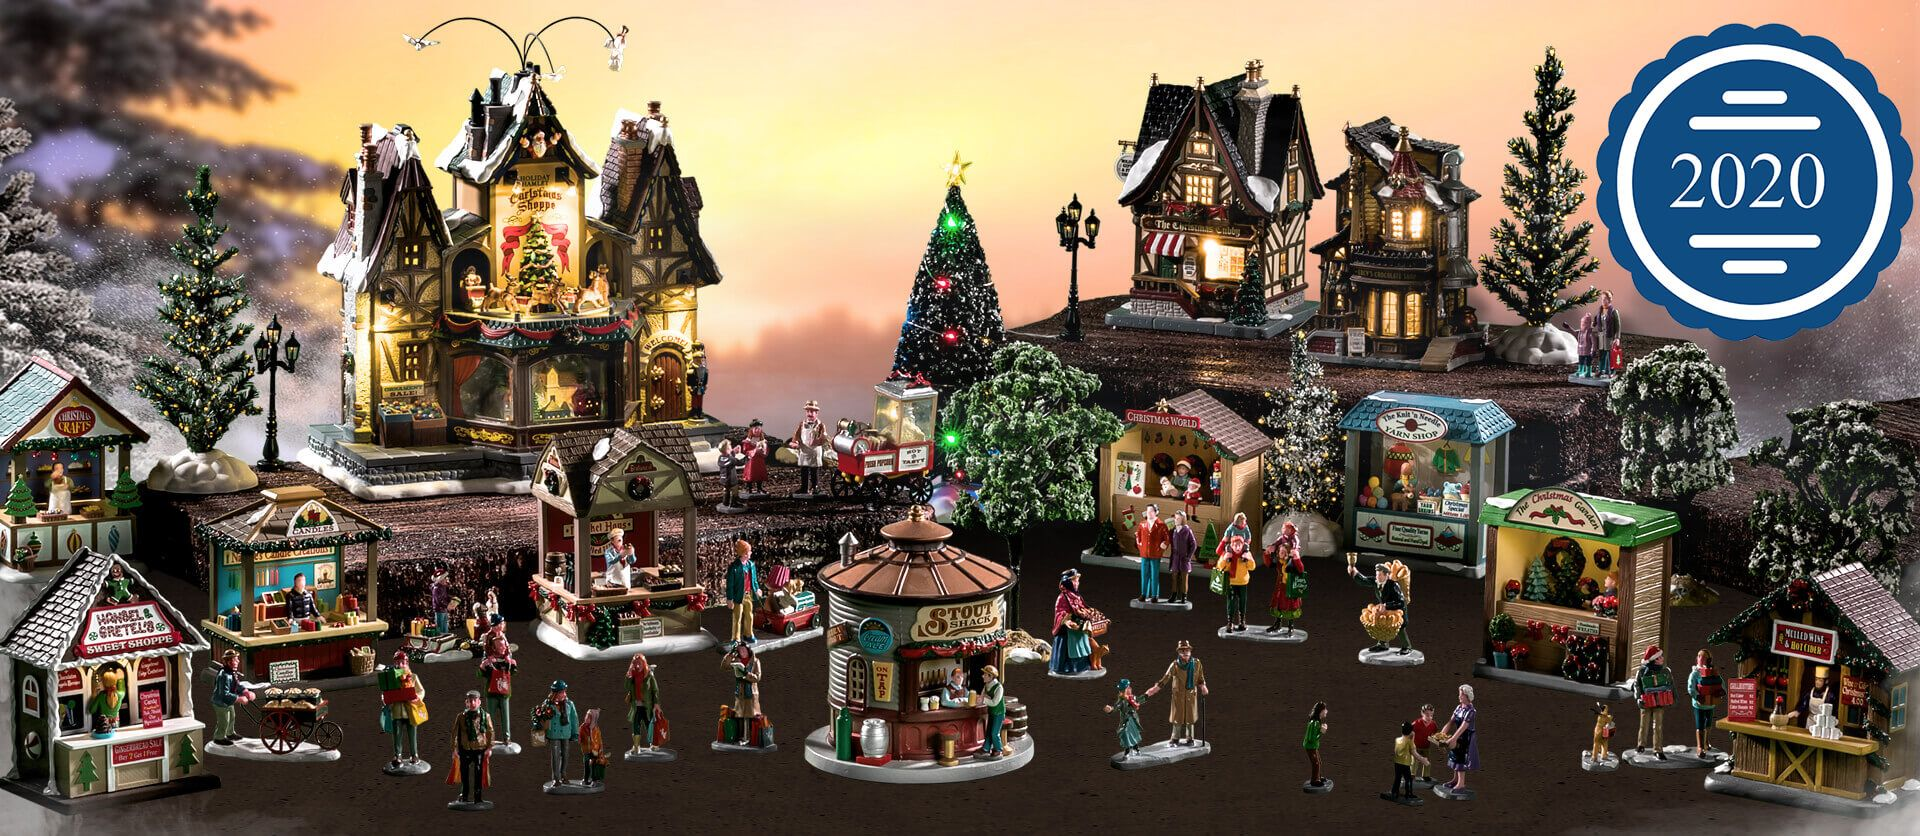 Lemax 2020 Christmas Village House Lemax 2020 Holiday & Christmas Villages in 2020 | Lemax village